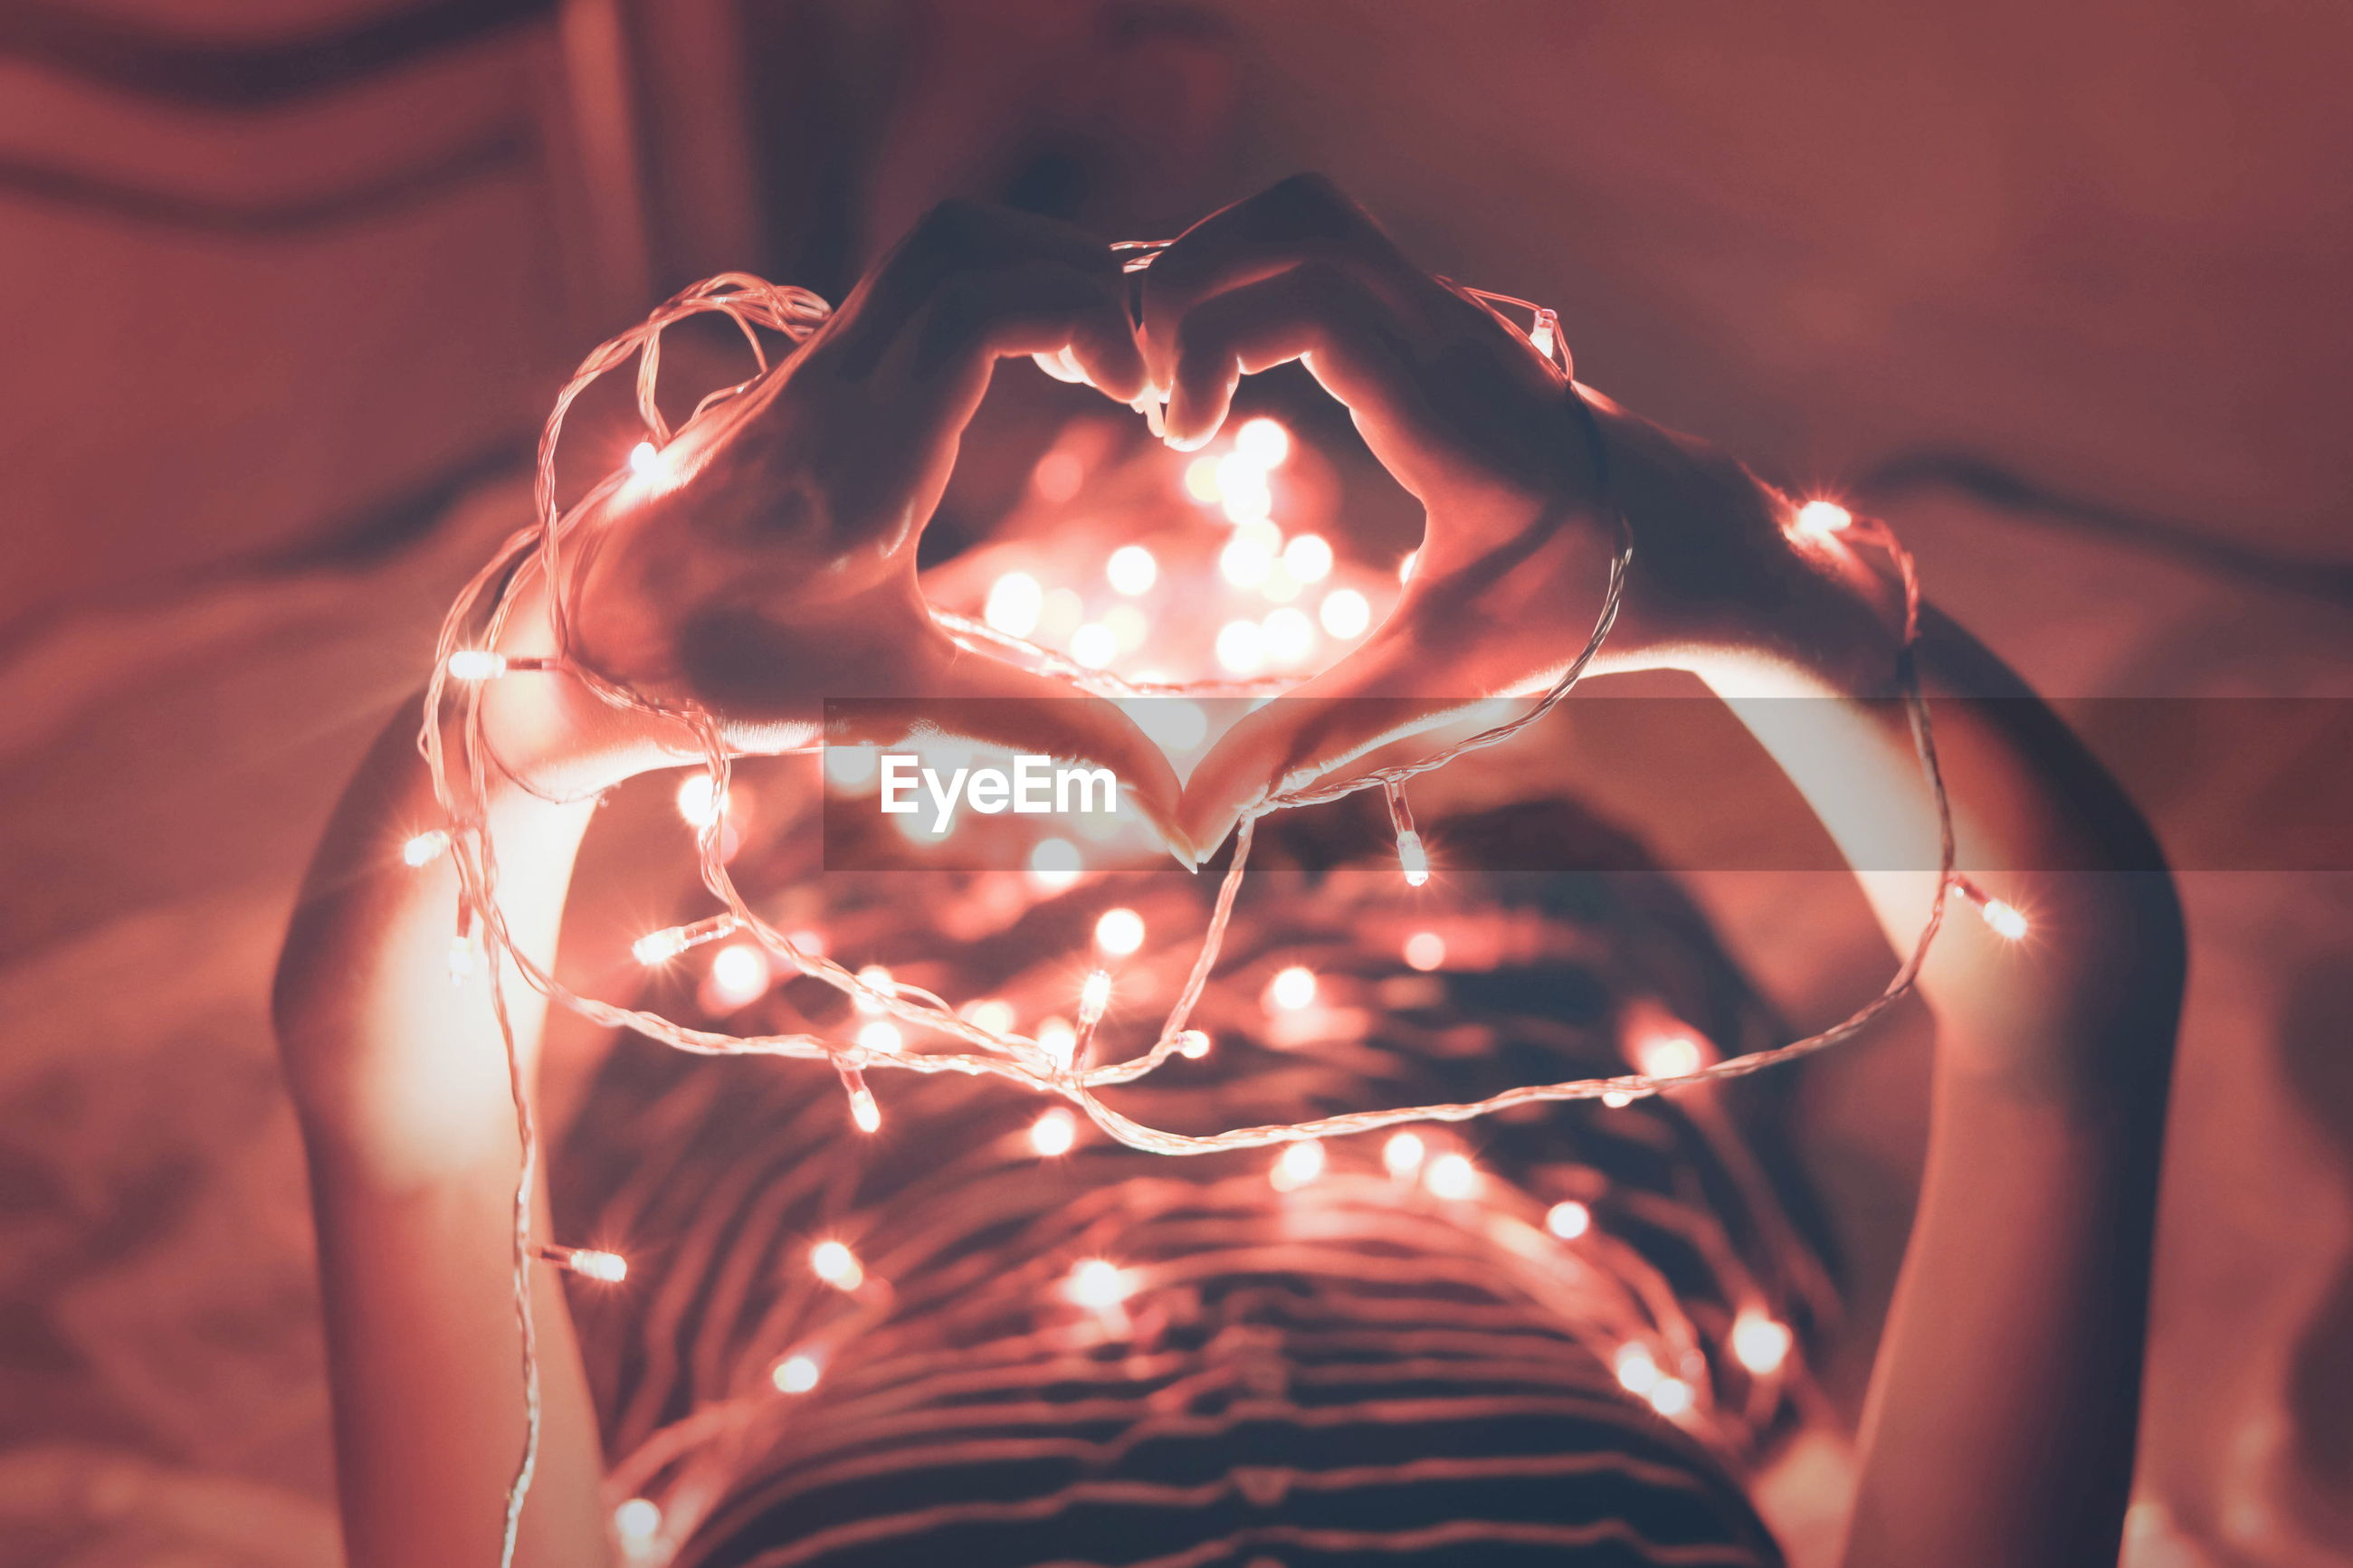 High angle view of hands forming heart shape next to illuminated lights